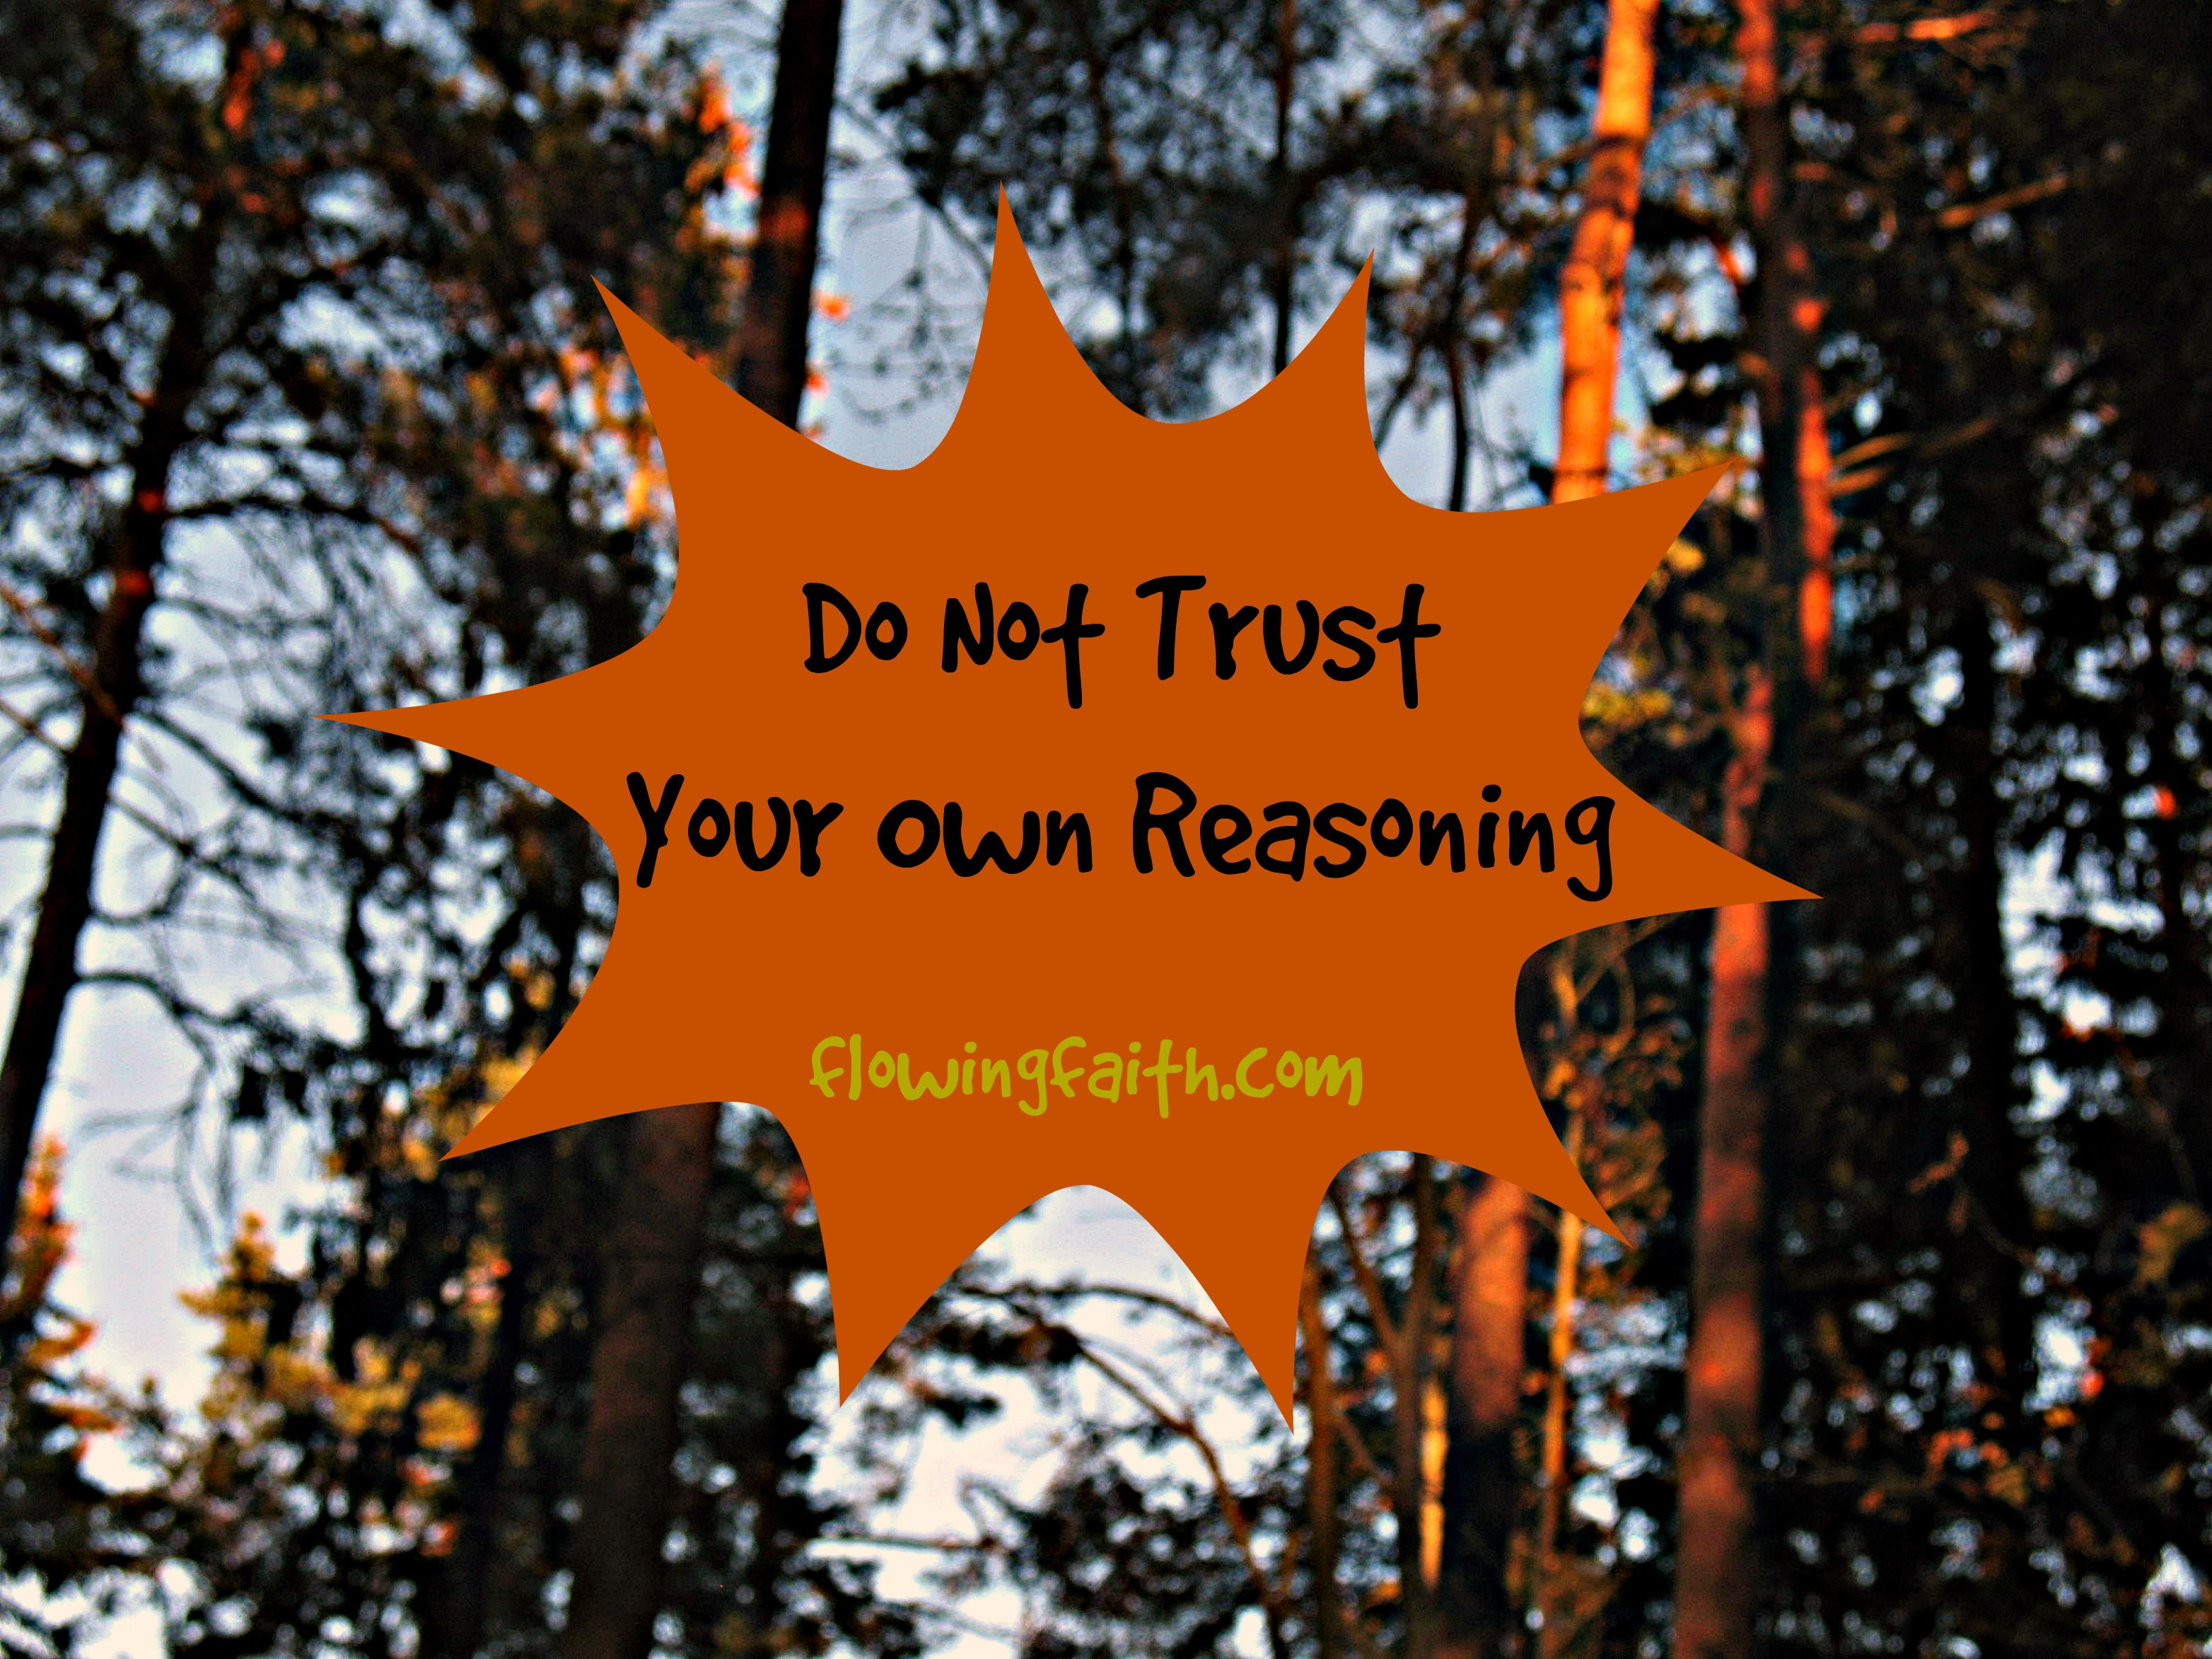 Do not trust your own reasoning